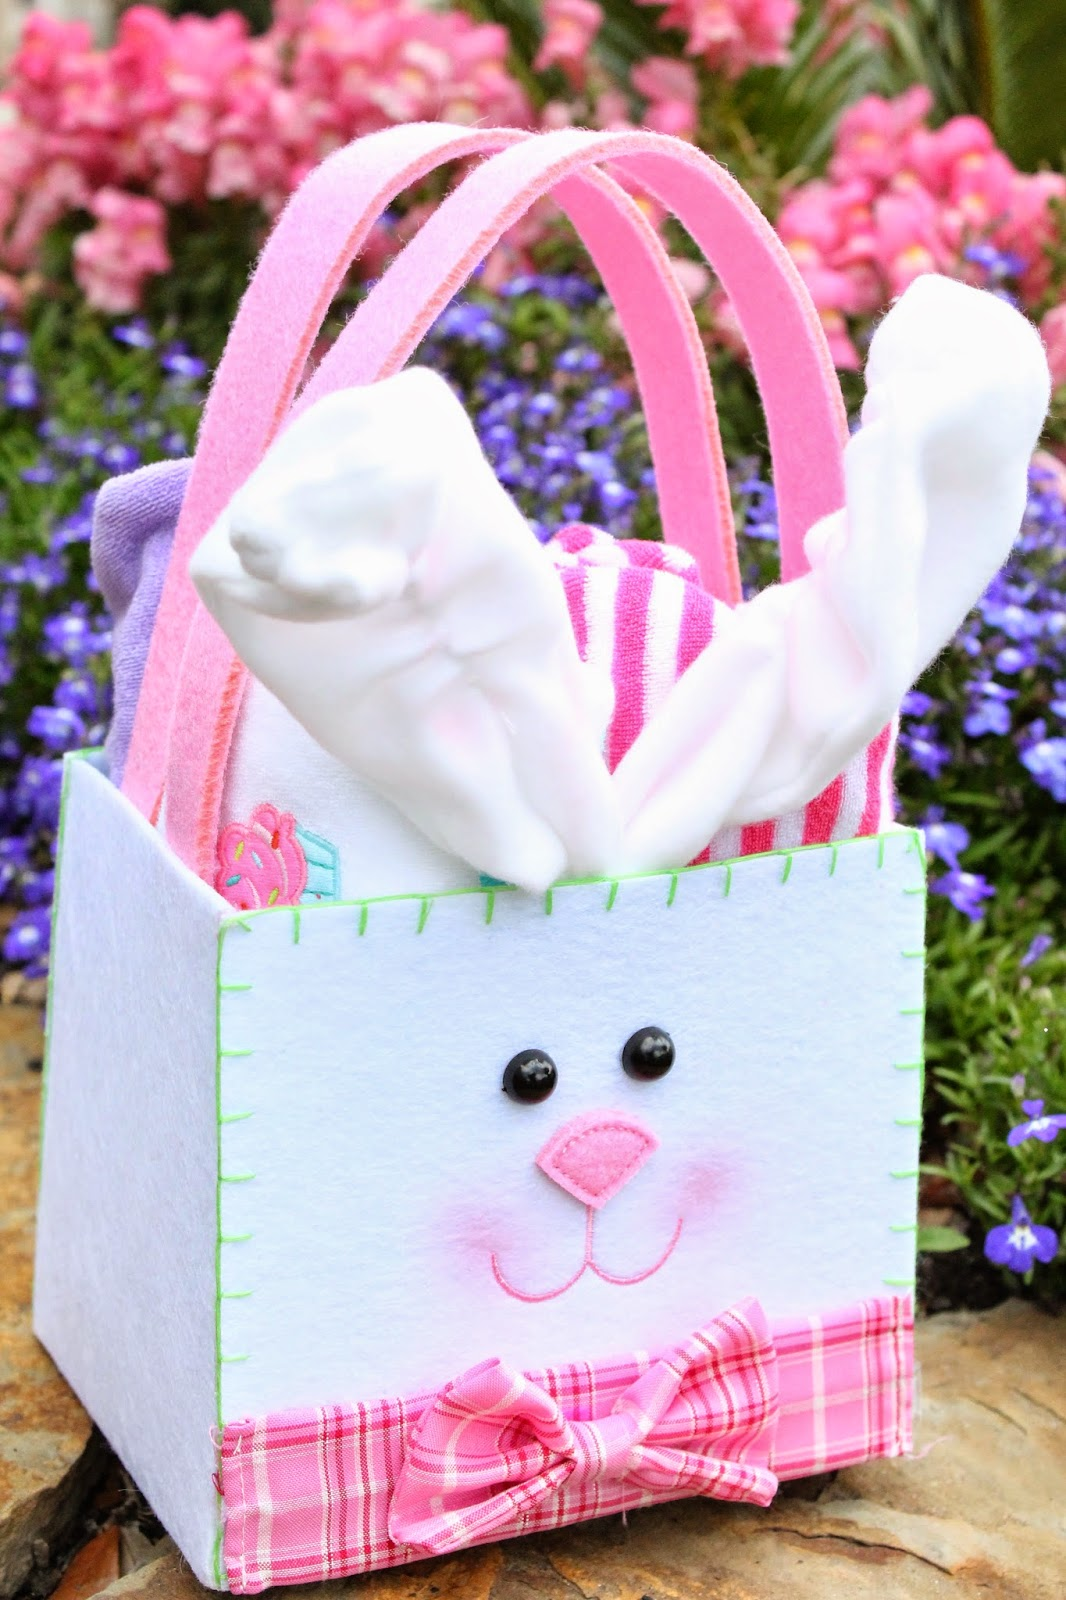 Charlottes easter basket 2015 seven graces i may or may not have cried pulling these pictures up because holy hot smokes has my baby grown and man how time has flown negle Images